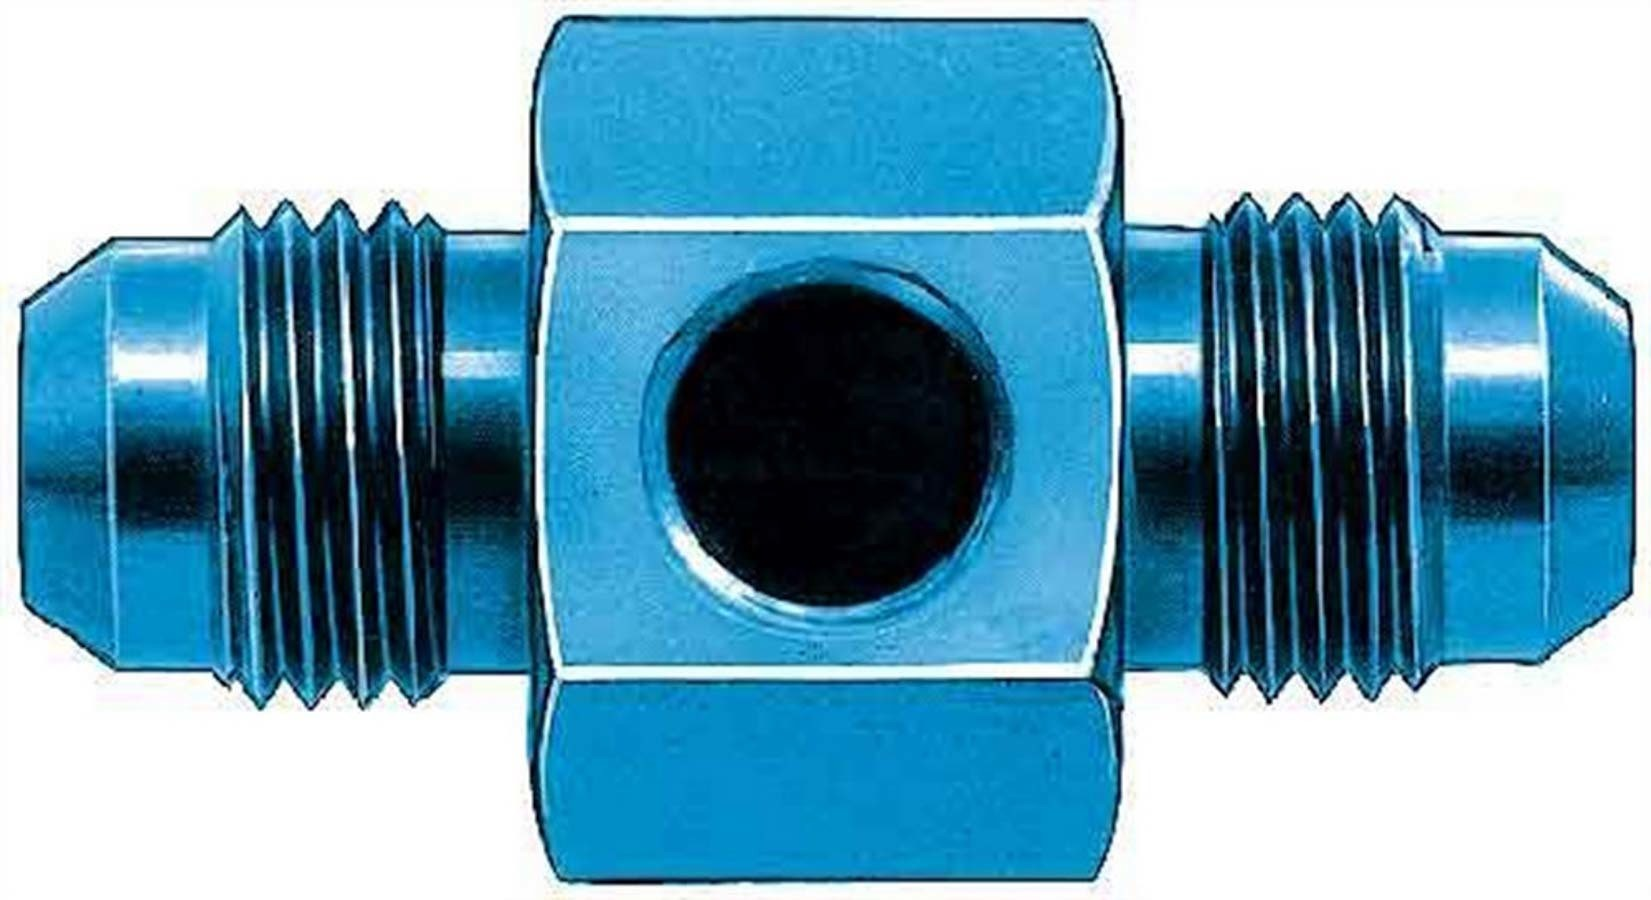 Aeroquip FCM2184 Fitting, Gauge Adapter, Straight, 8 AN Male to 8 AN Male, 1/8 in NPT Gauge Port, Aluminum, Blue Anodize, Each